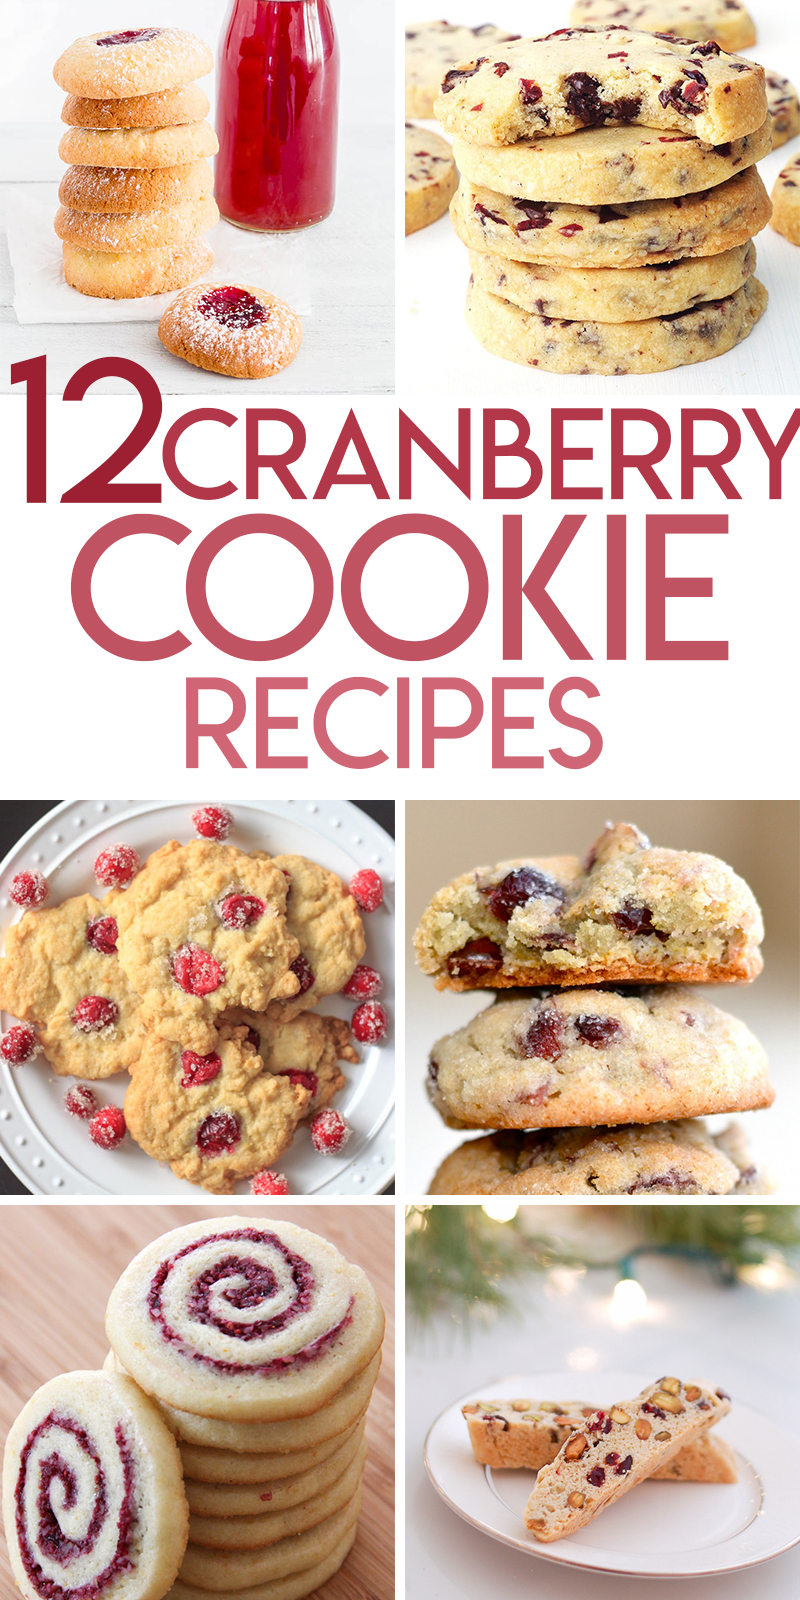 Cranberry Cookie recipes for Christmas